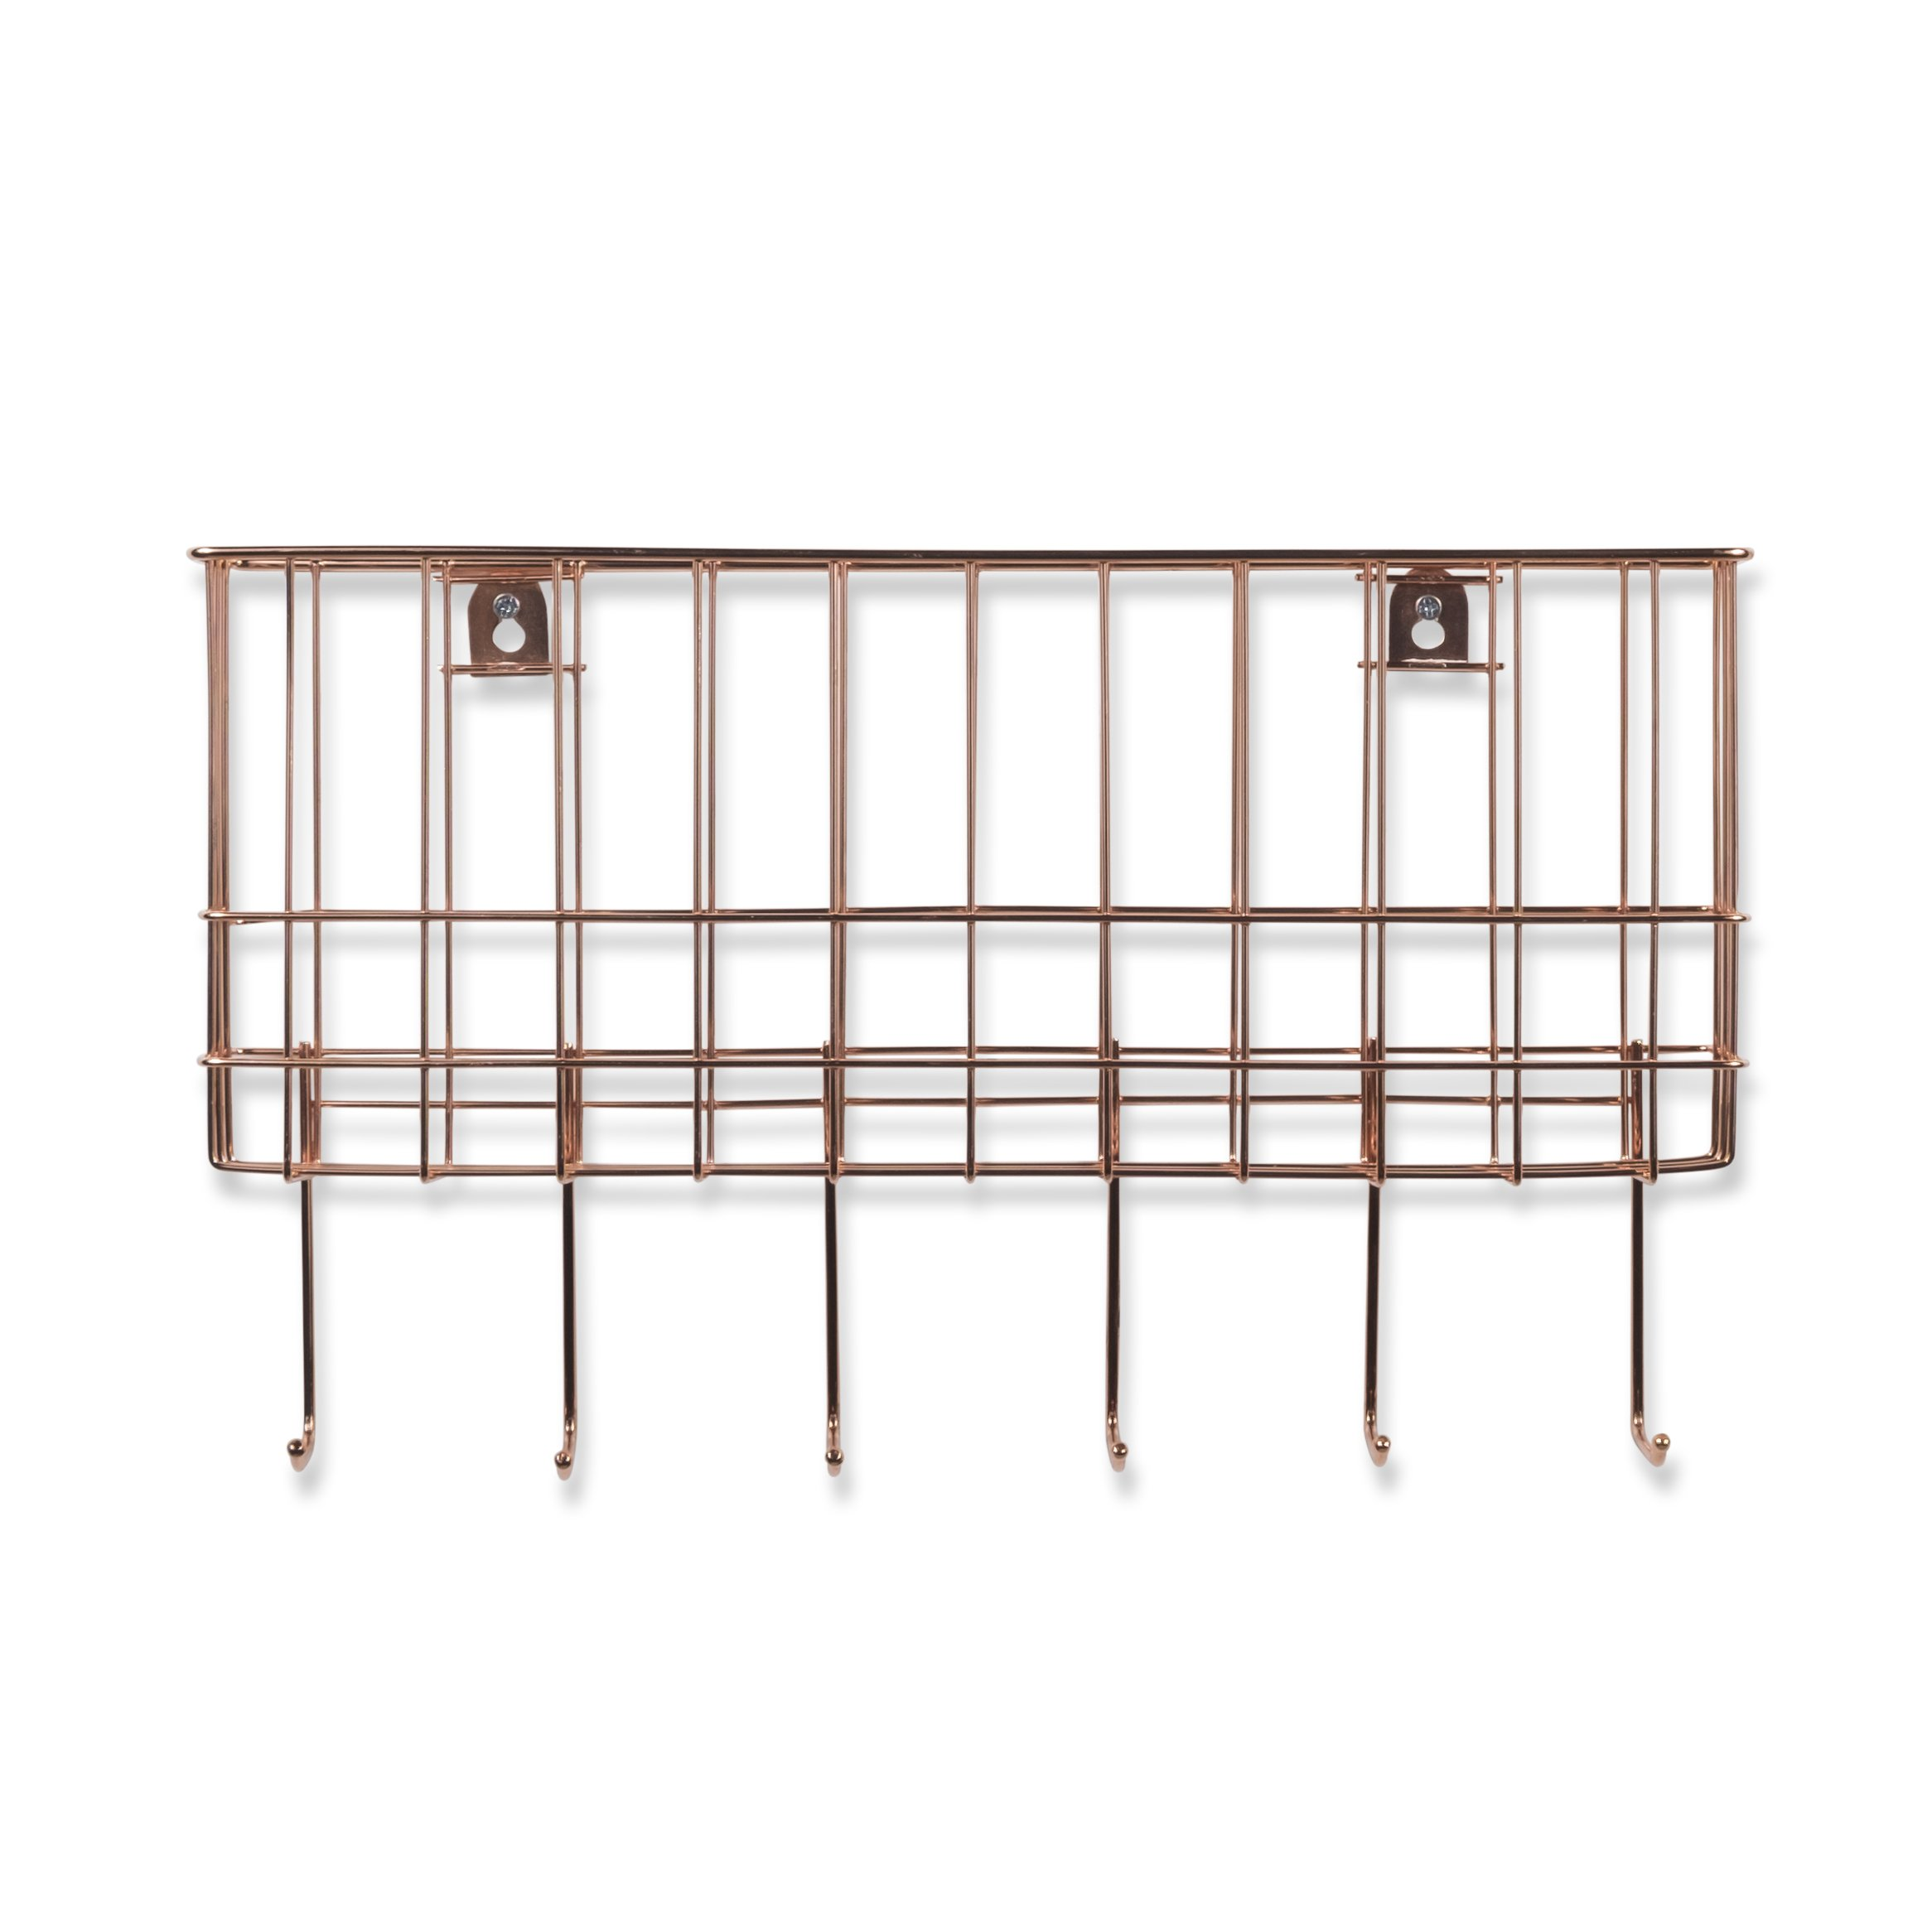 WALL35 Sicily Unique Metal Wire Basket - Wall Mounted Entryway Organizer - Key Holder - Coat Rack with Hooks - Mail and Magazine Holder (Copper) by Wall35 (Image #6)